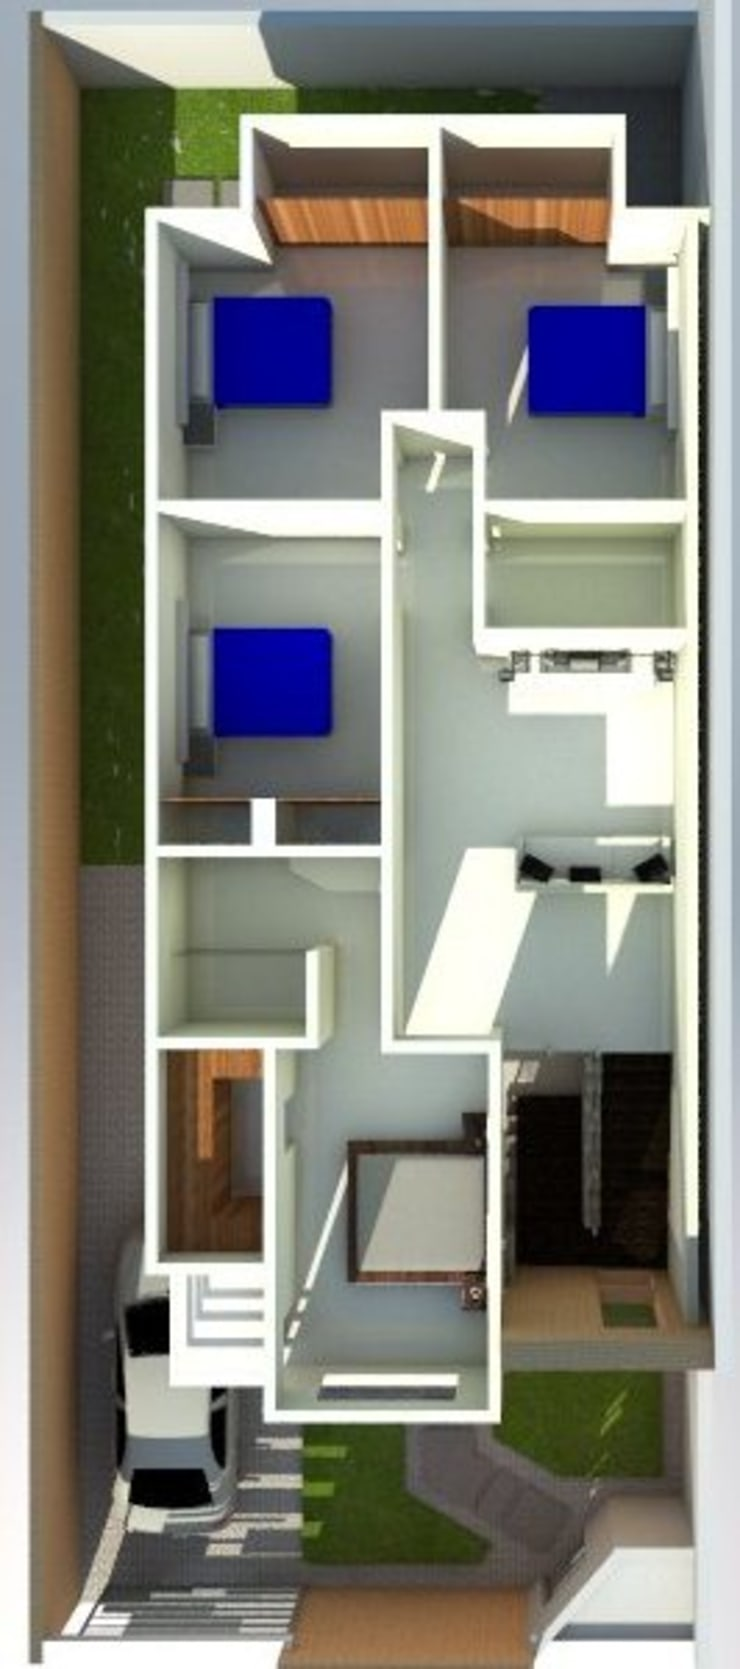 Bedroom by 3R. ARQUITECTURA